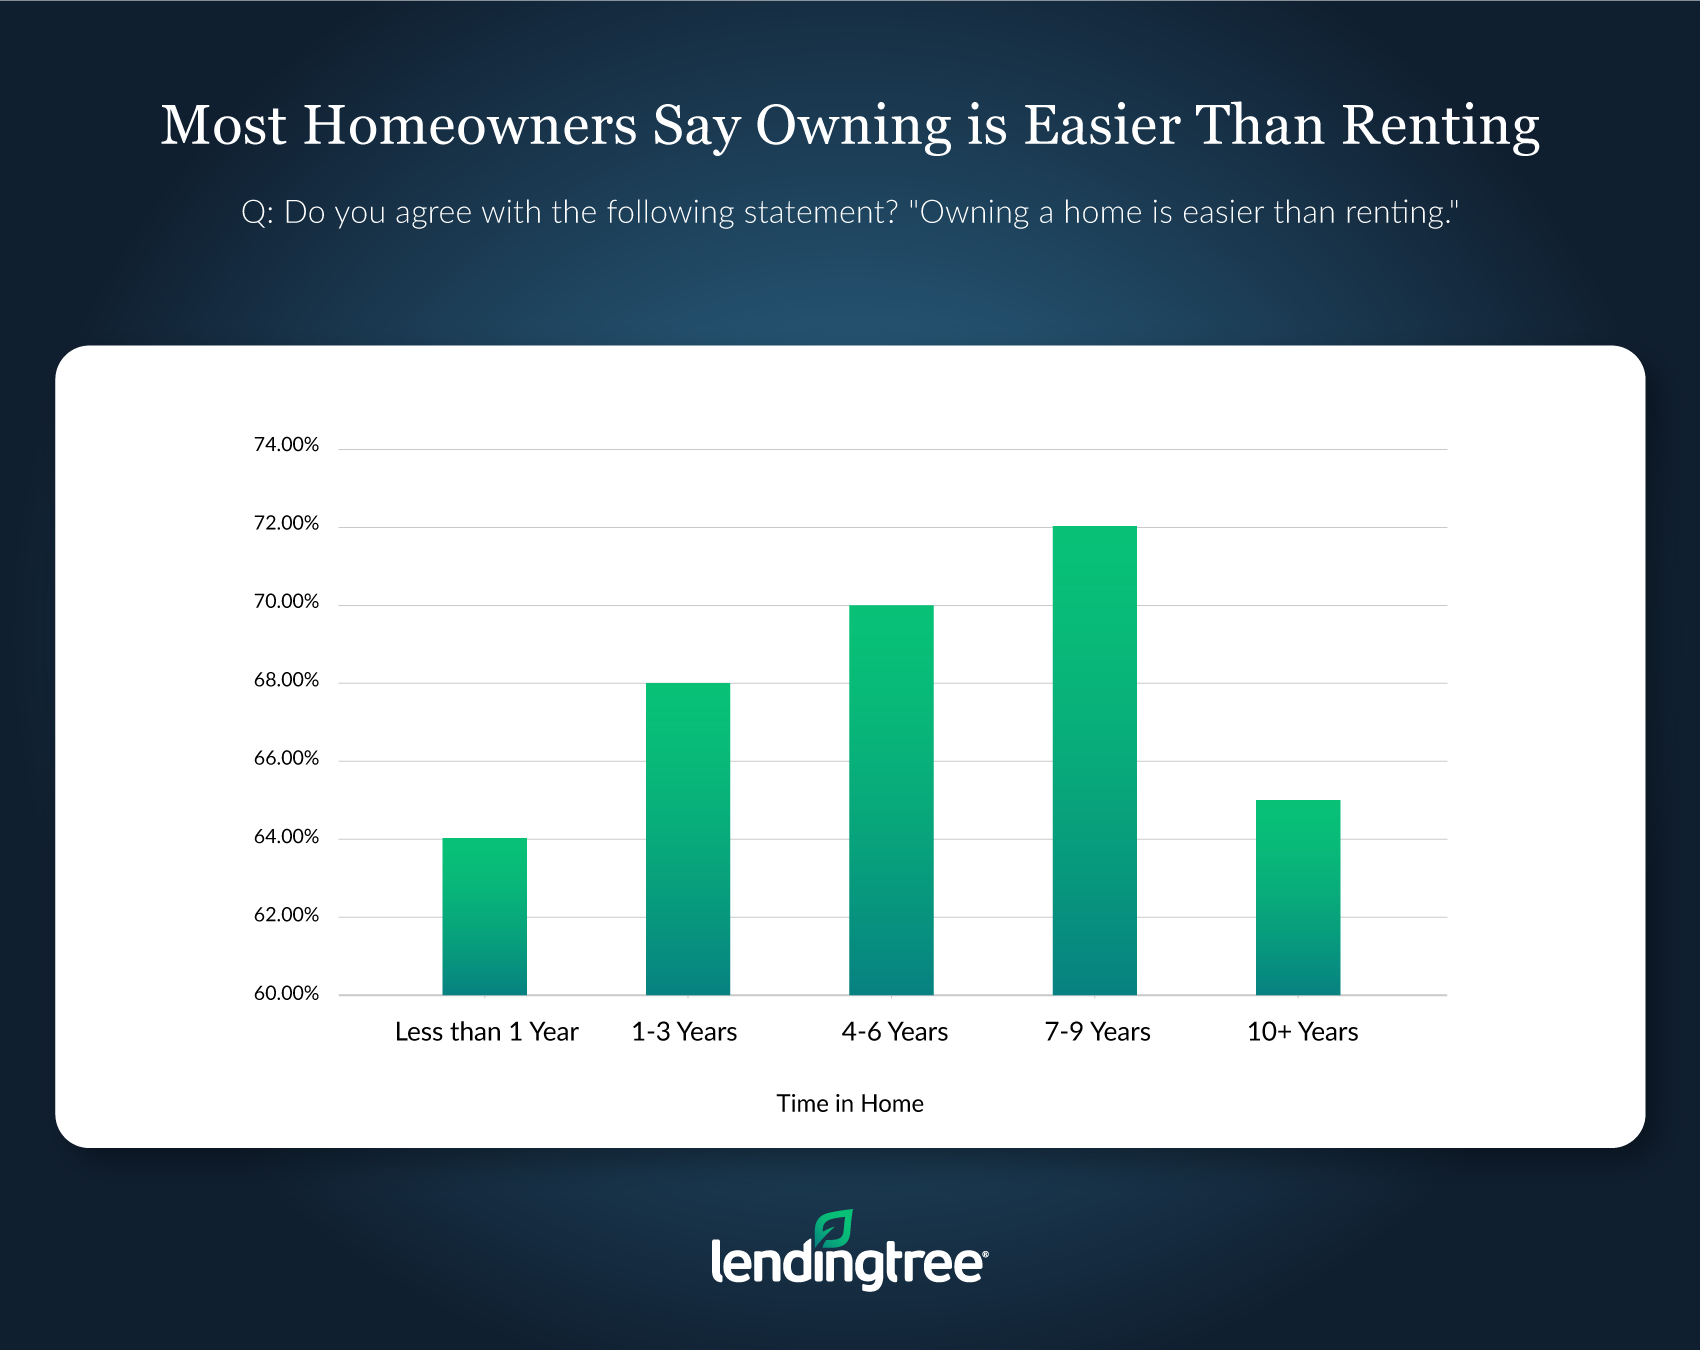 LendingTree owning easier than renting chart. Visit source link at the end of this article for more information.